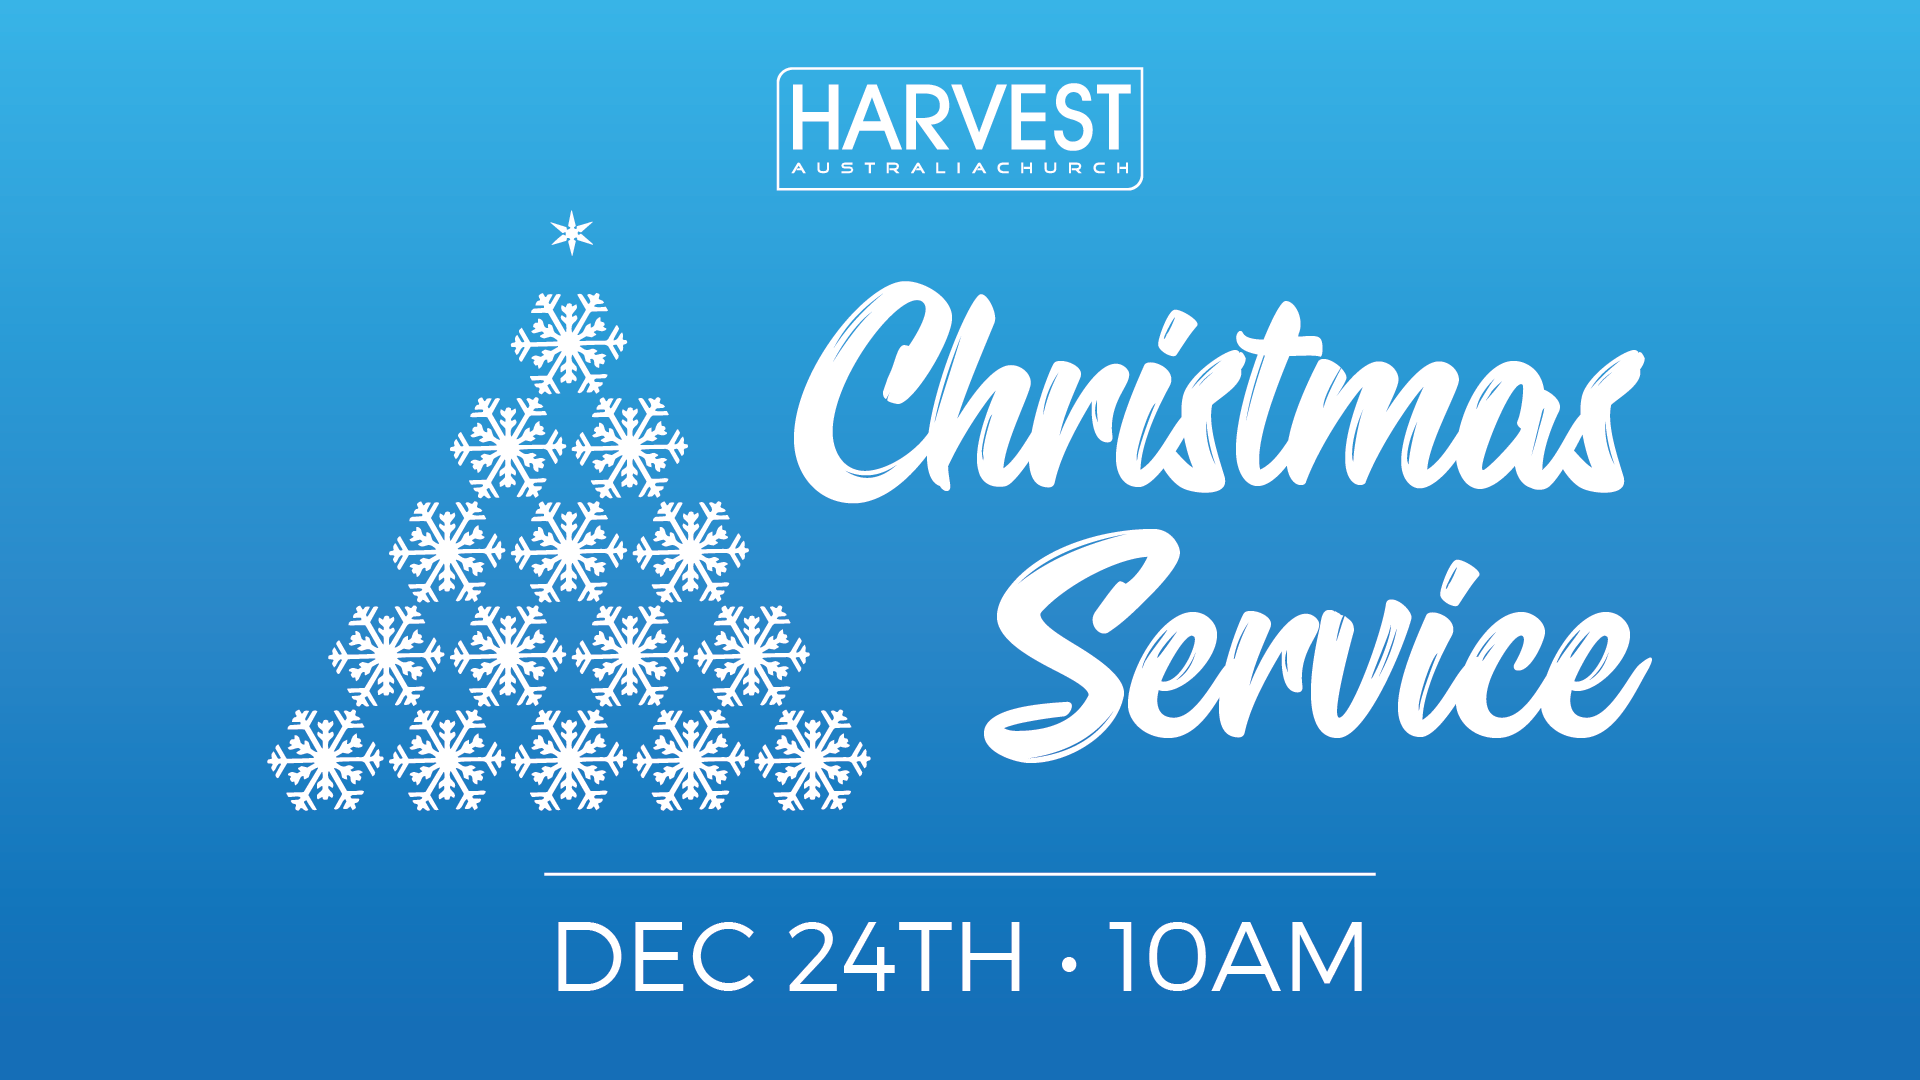 Join us after Church to celebrate Christmas and each other! Bring a Salad or Dessert to share! See you there!